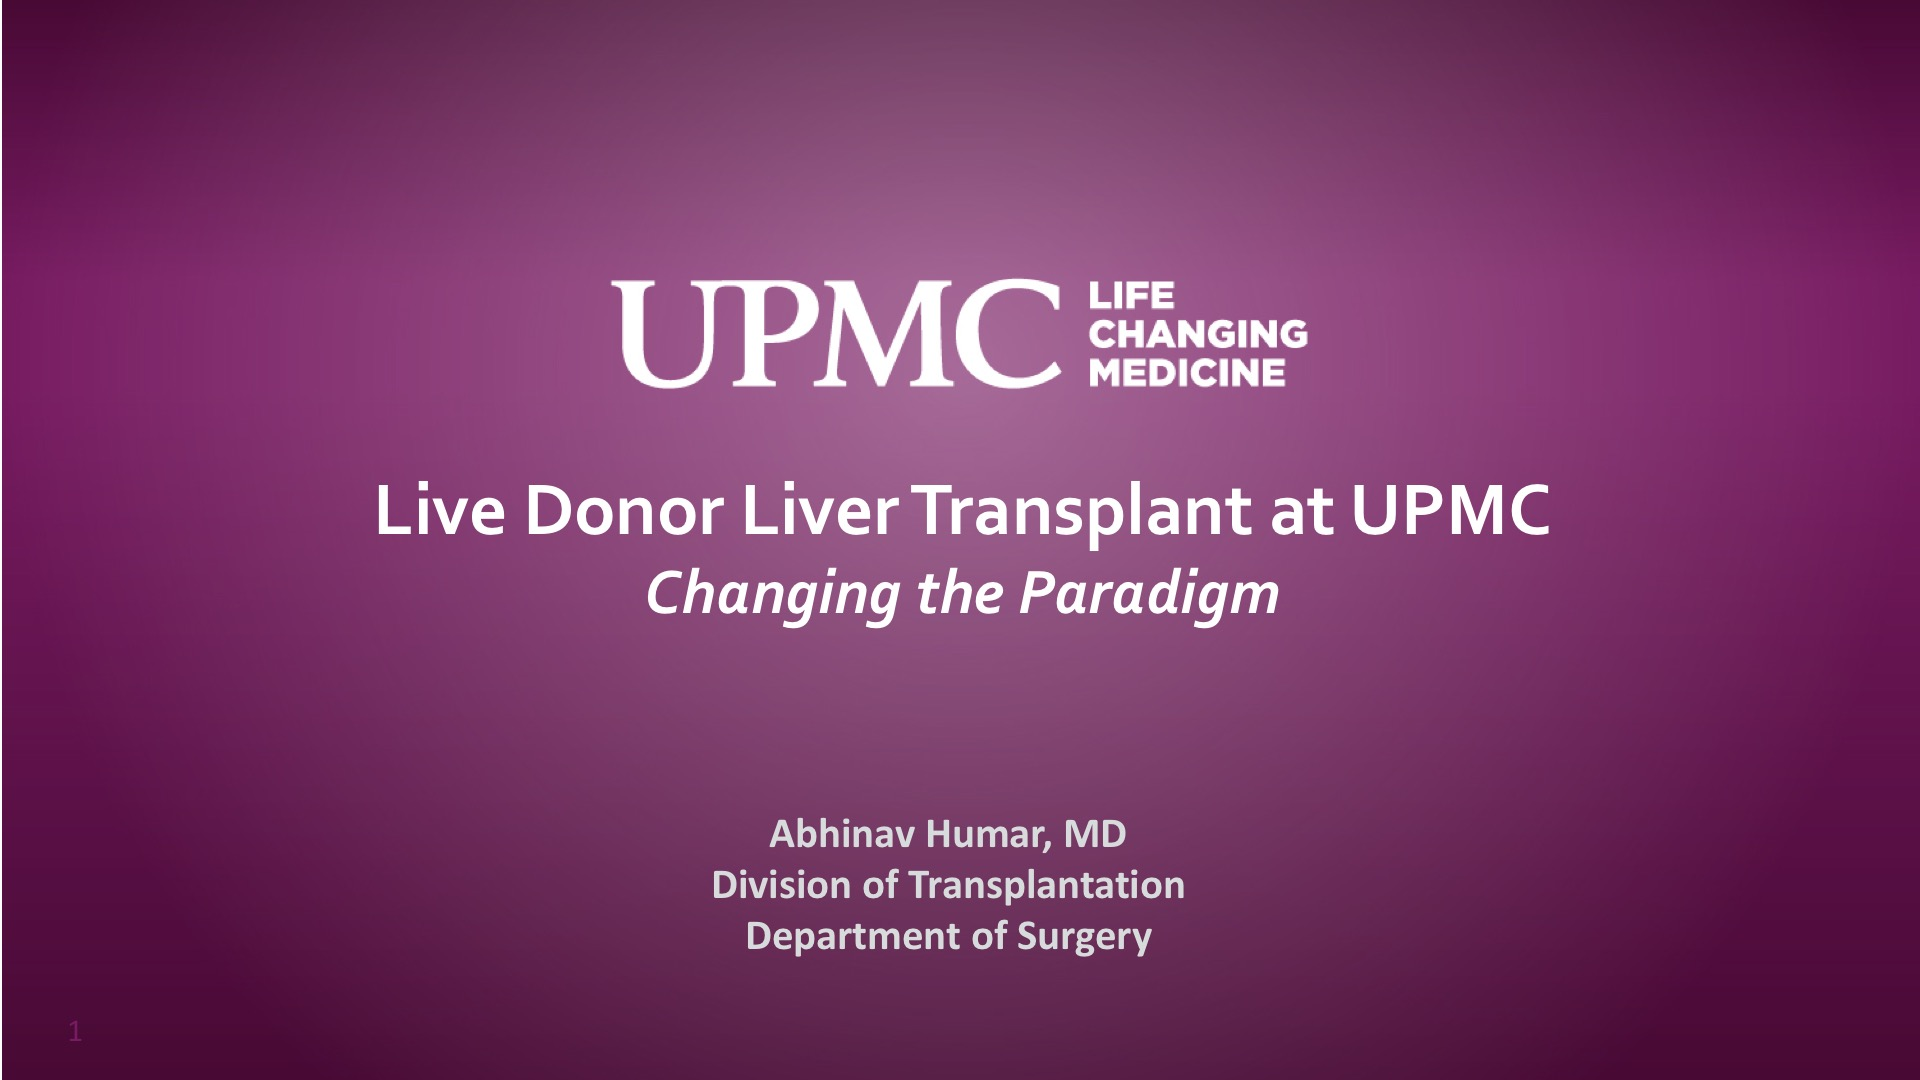 Live Donor Liver Transplant at UPMC Changing the Paradigm | UPMC